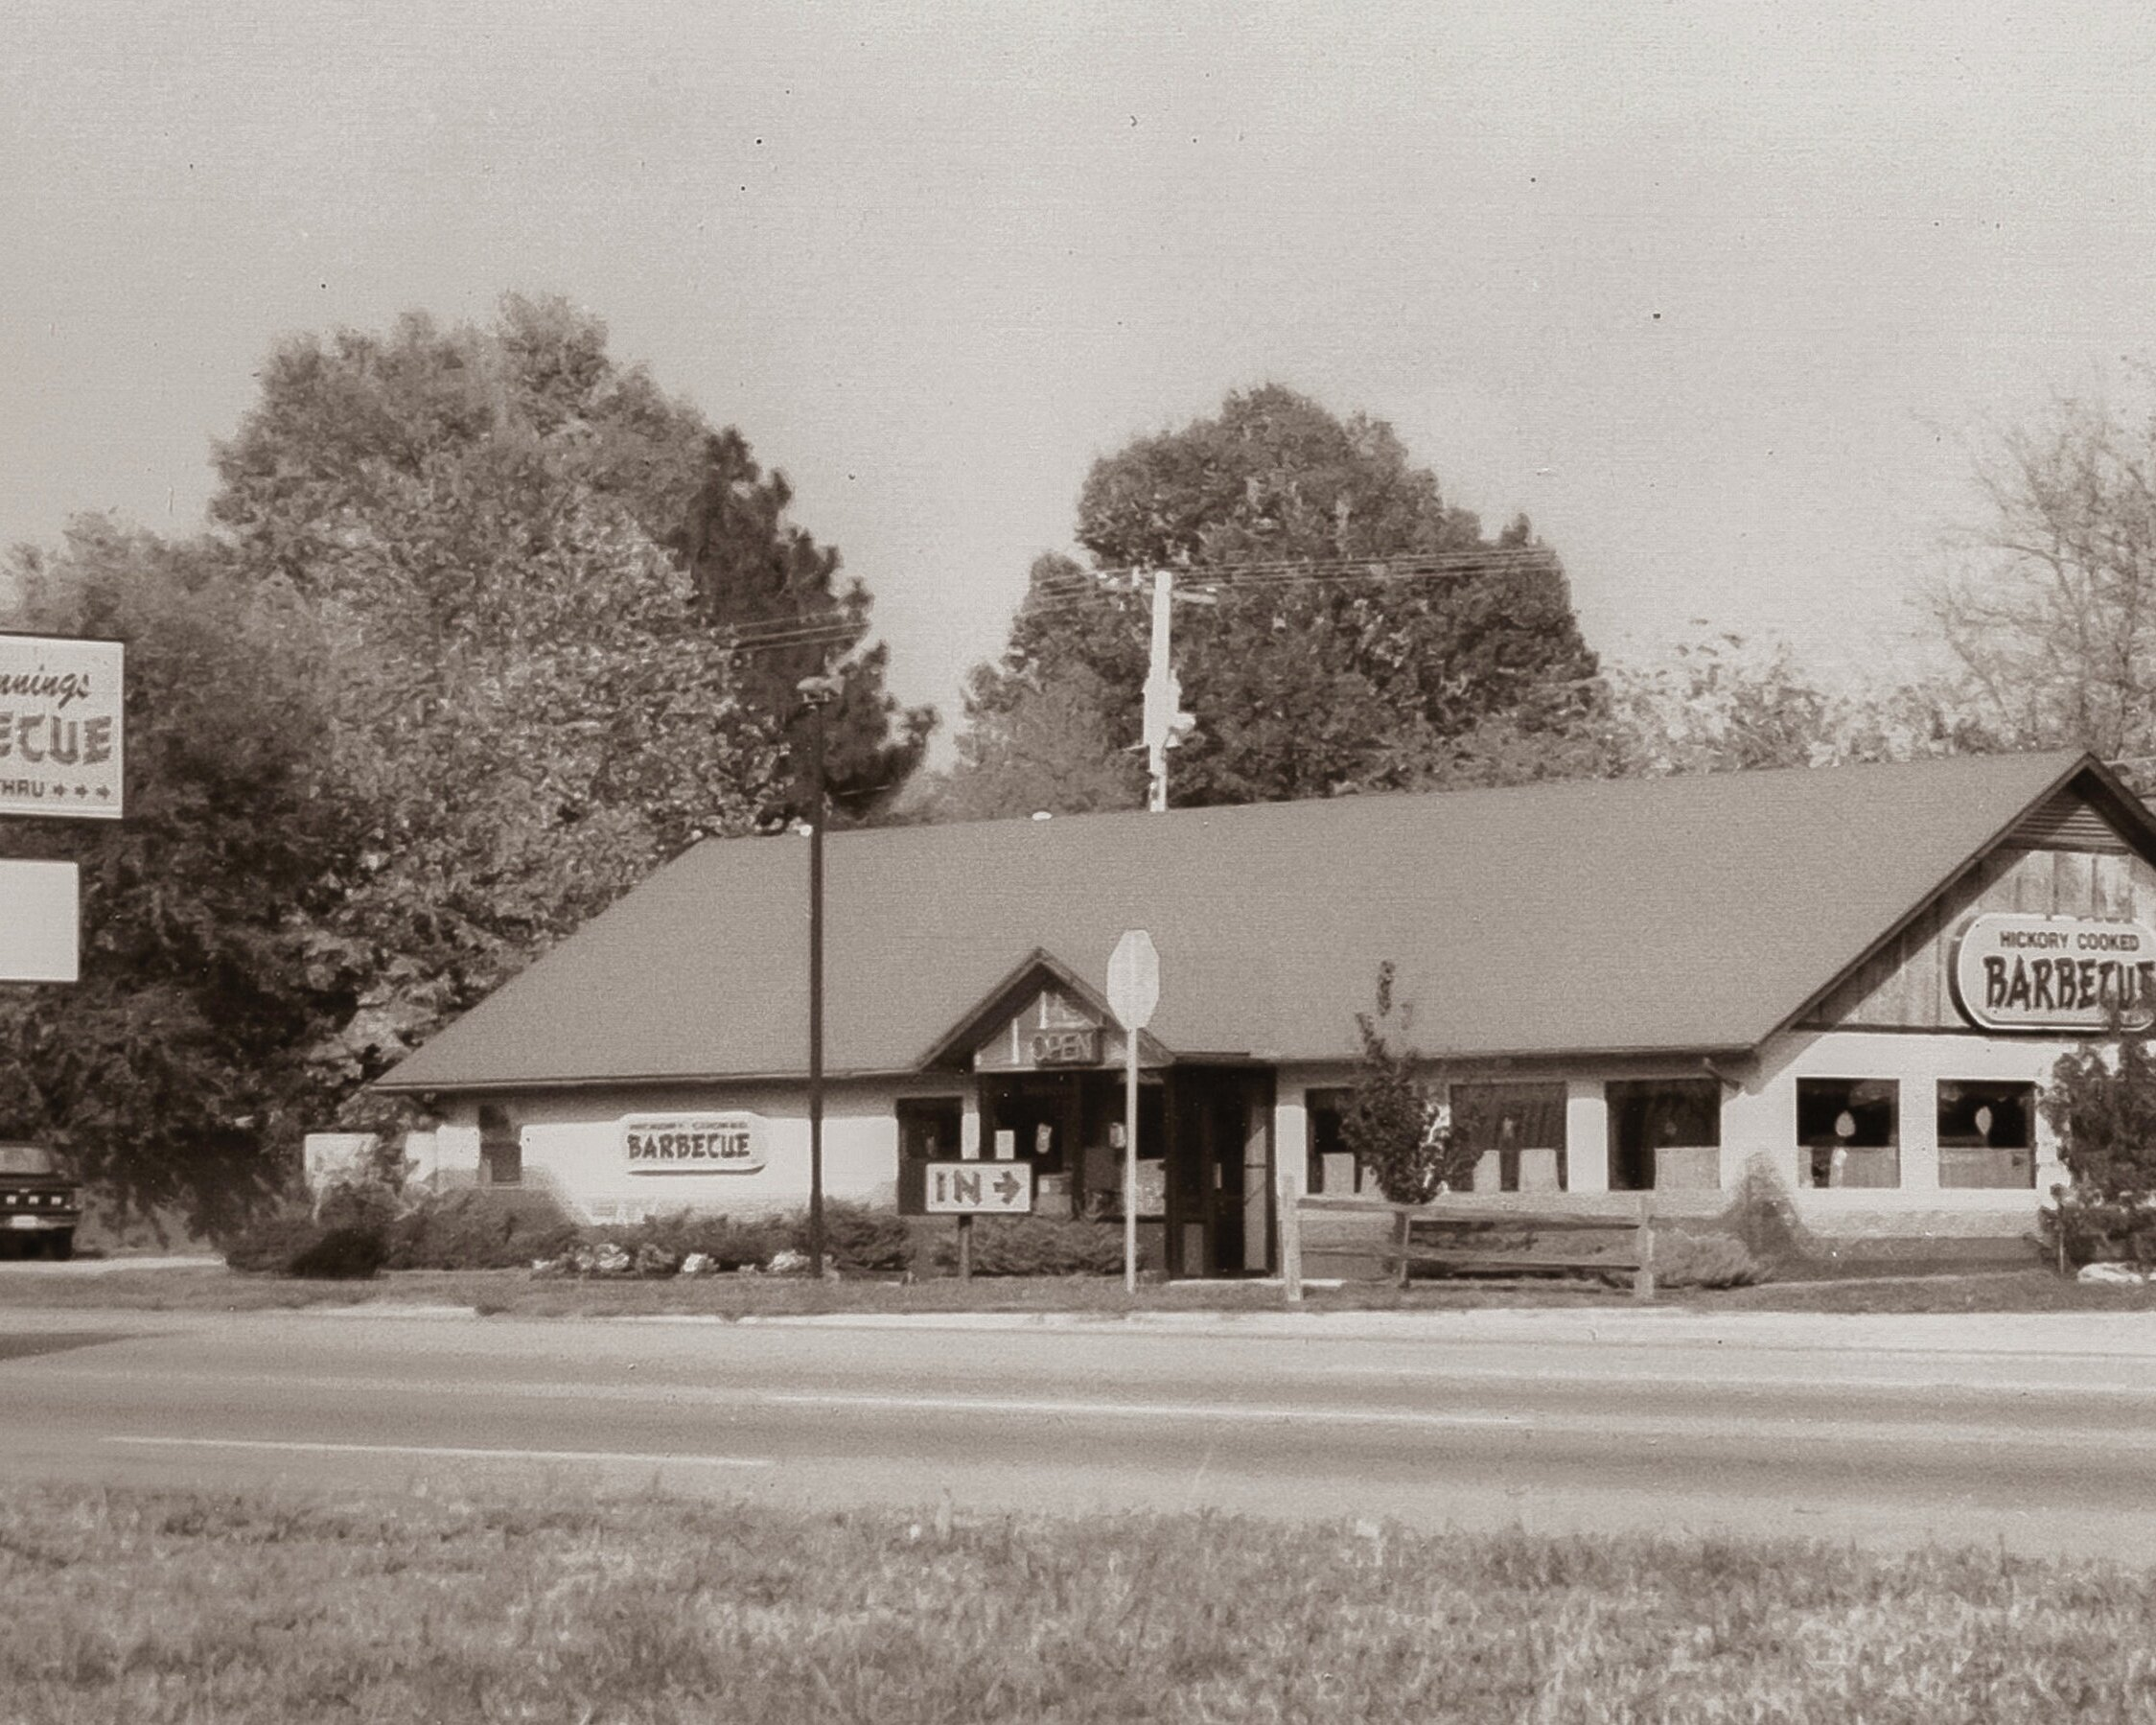 1988 - THE VERY FIRST AL LOCATION OF RICK'S BARBECUE OPENED IN 1988 AT 205 WOODWARD AVE. MUSCLE SHOALS, AL, 35661.